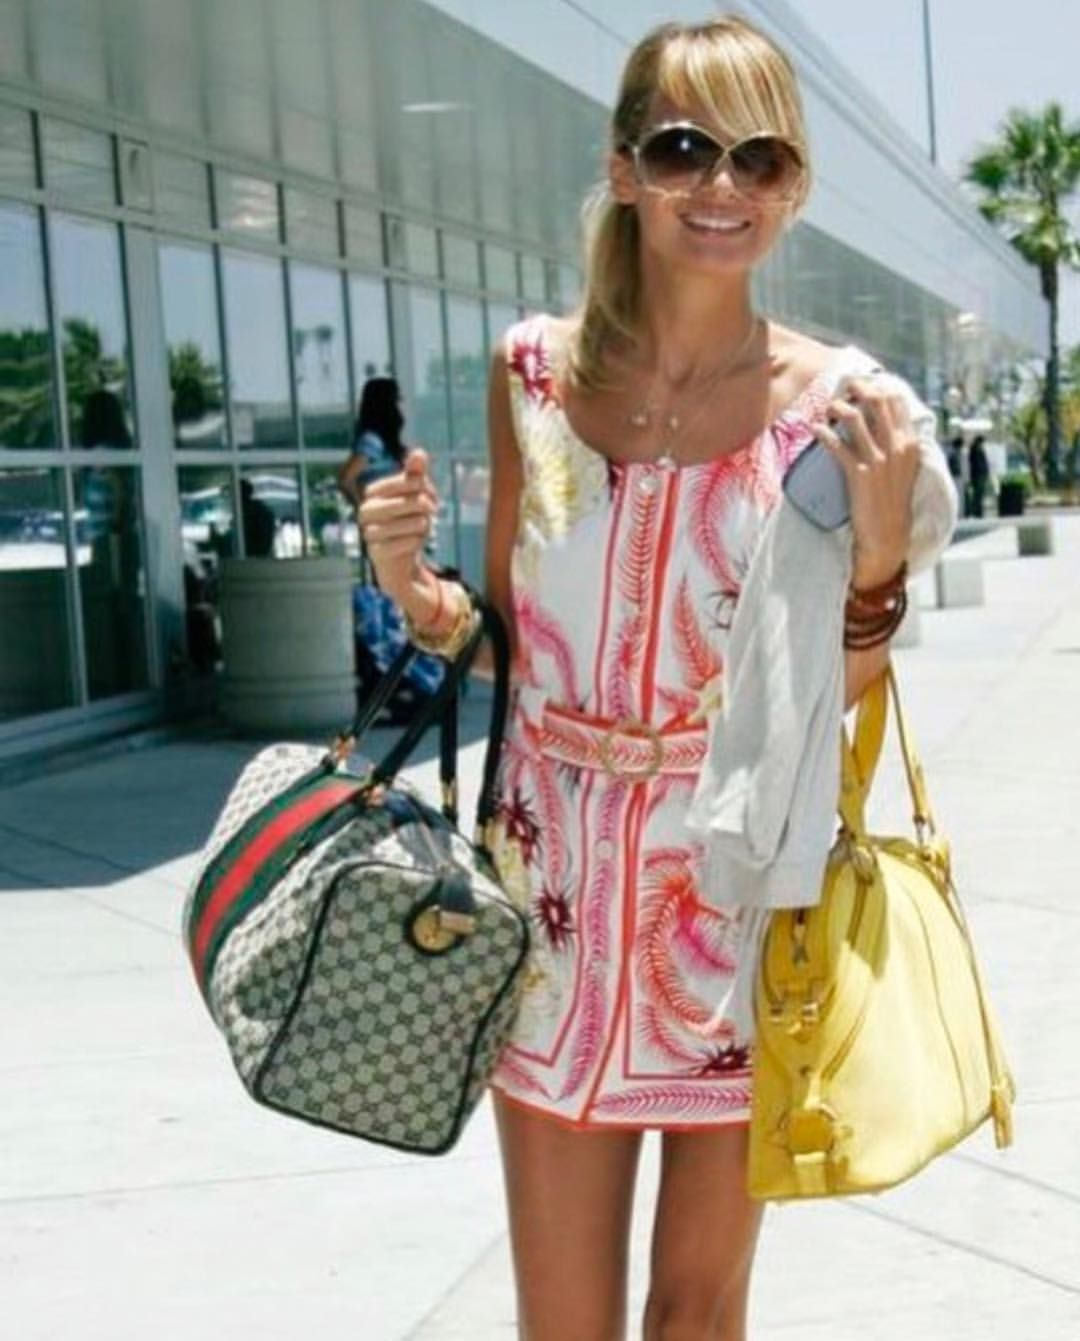 cd0a1ae9a66e7 Nicole Richie wearing vintage Emilio Pucci beach cover up, Christian Dior  butterfly sunglasses and Gucci Supreme monogram Boston bag. Styled by  Rachel Zoe.